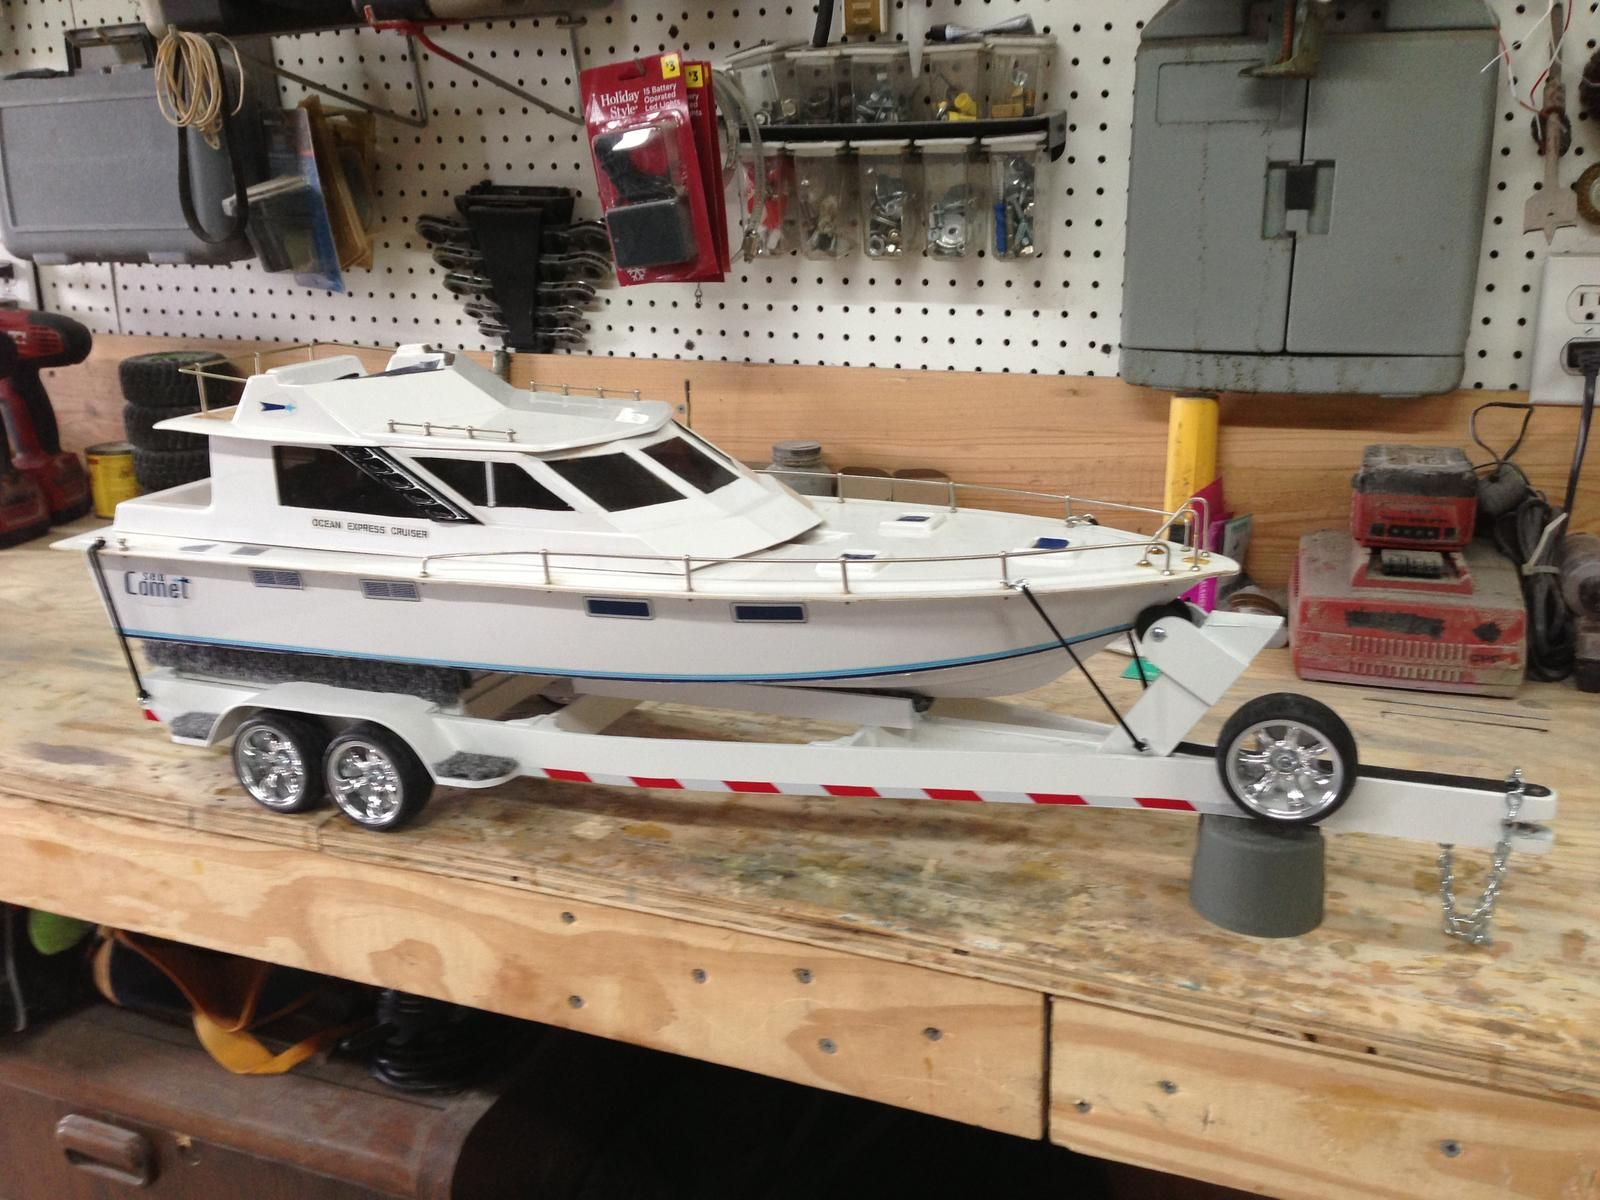 Chris craft model boat plans - Rc Boat Trailer